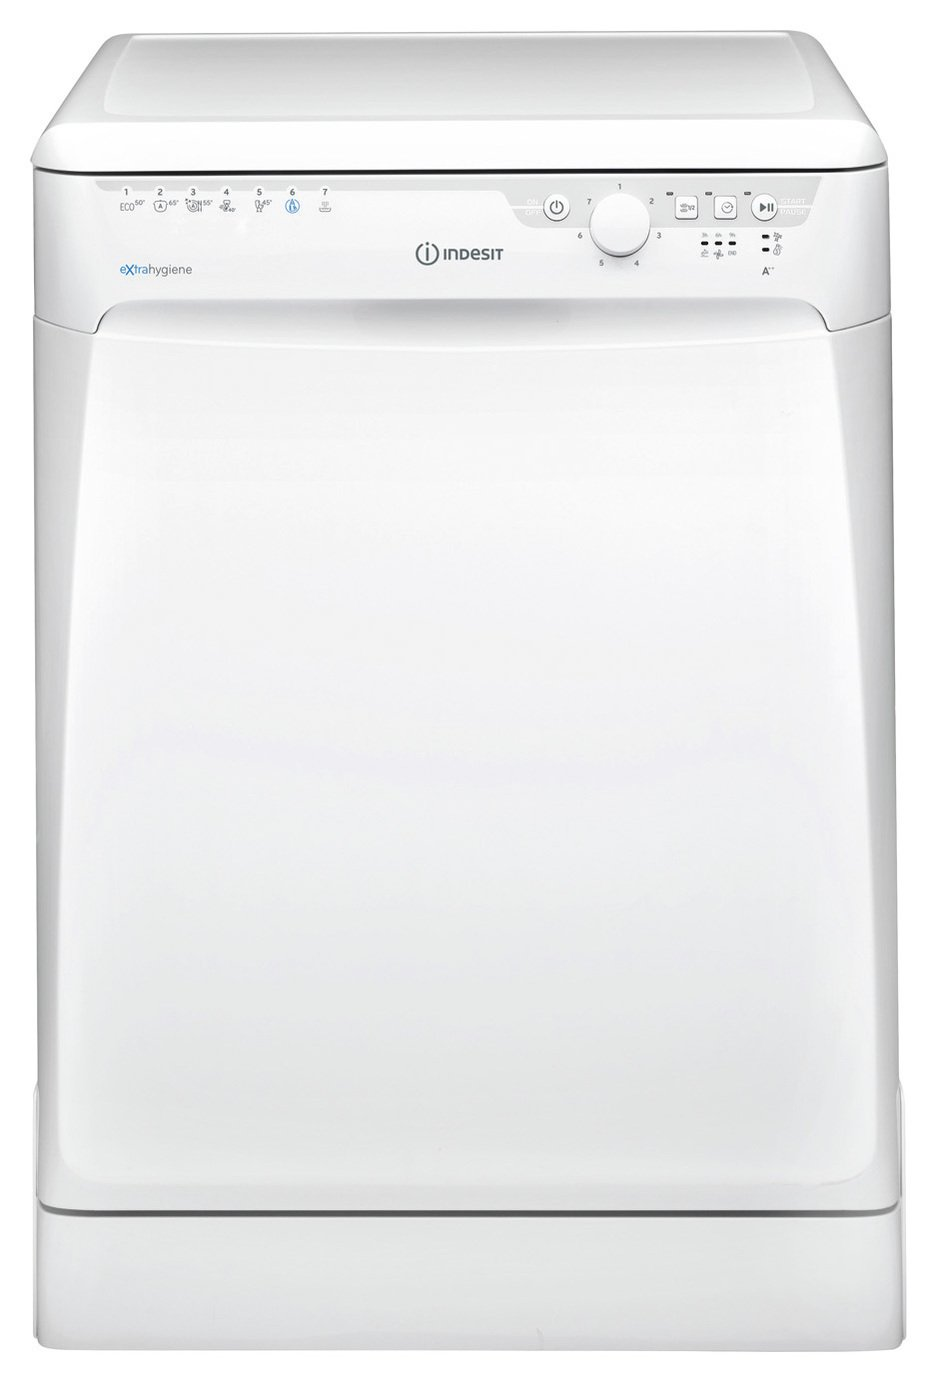 Indesit DFP27T96Z Full Size Freestanding Dishwasher - White